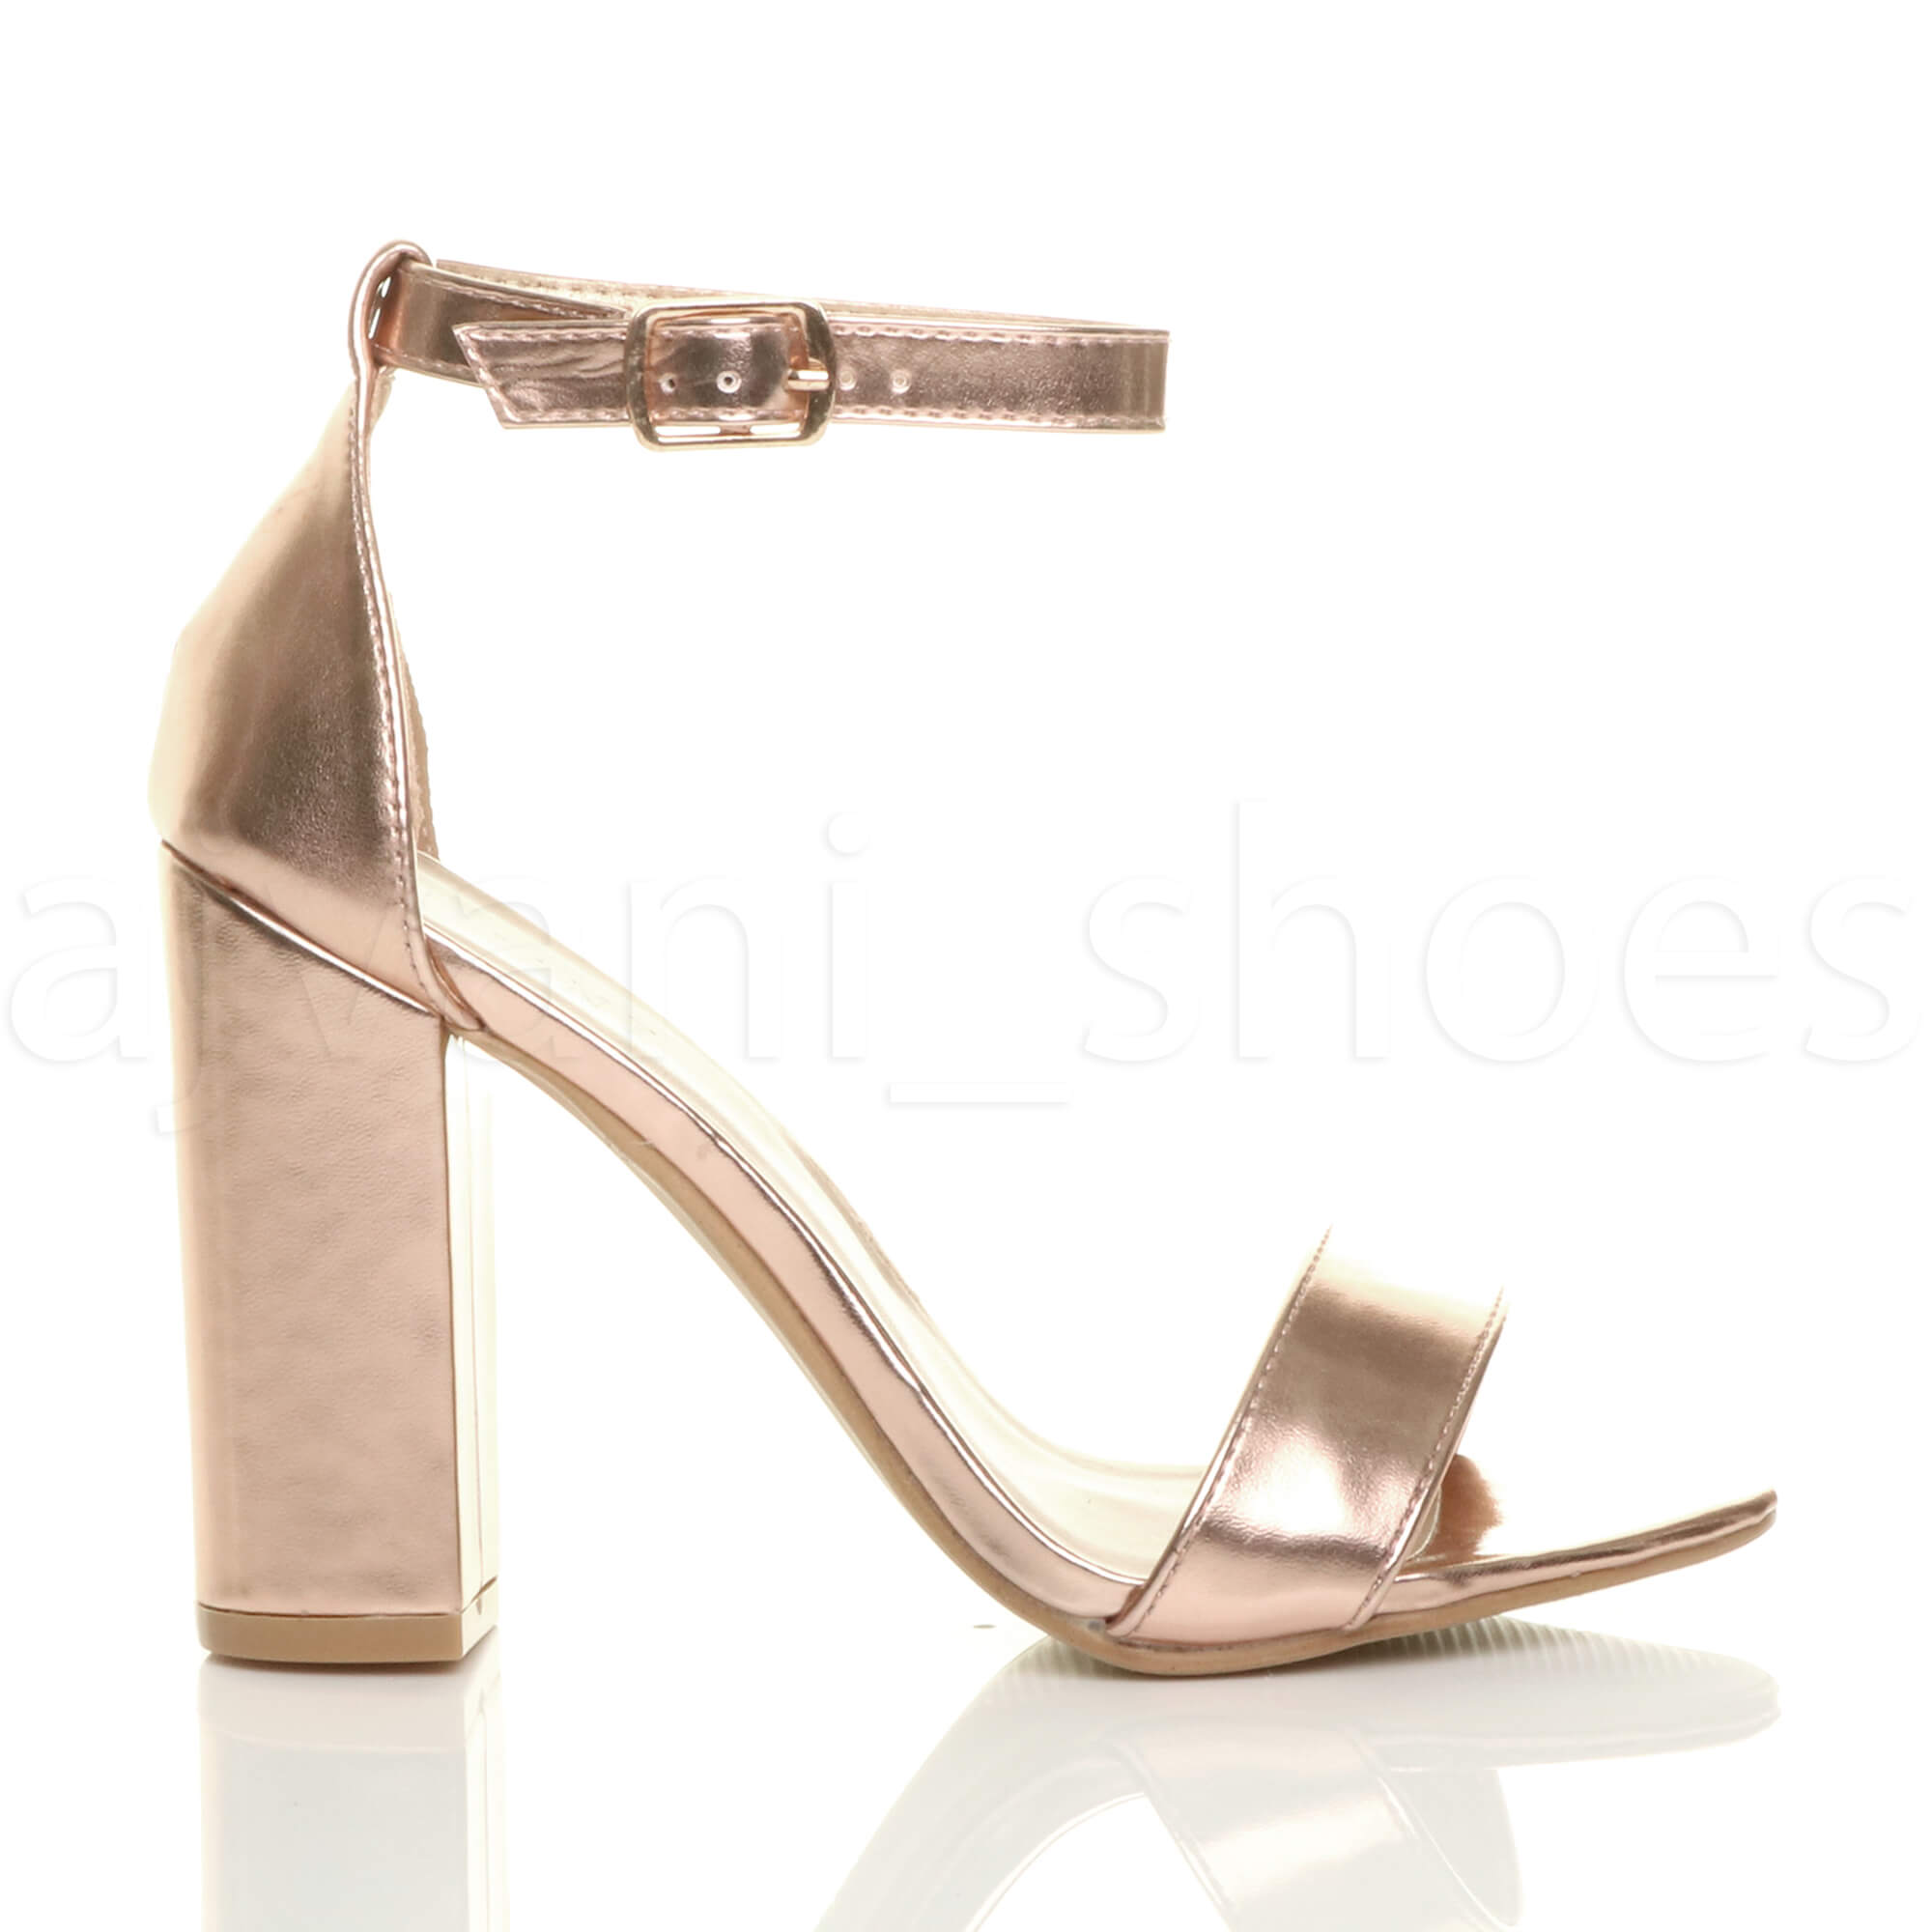 WOMENS-LADIES-BLOCK-HIGH-HEEL-ANKLE-STRAP-PEEP-TOE-STRAPPY-SANDALS-SHOES-SIZE thumbnail 132